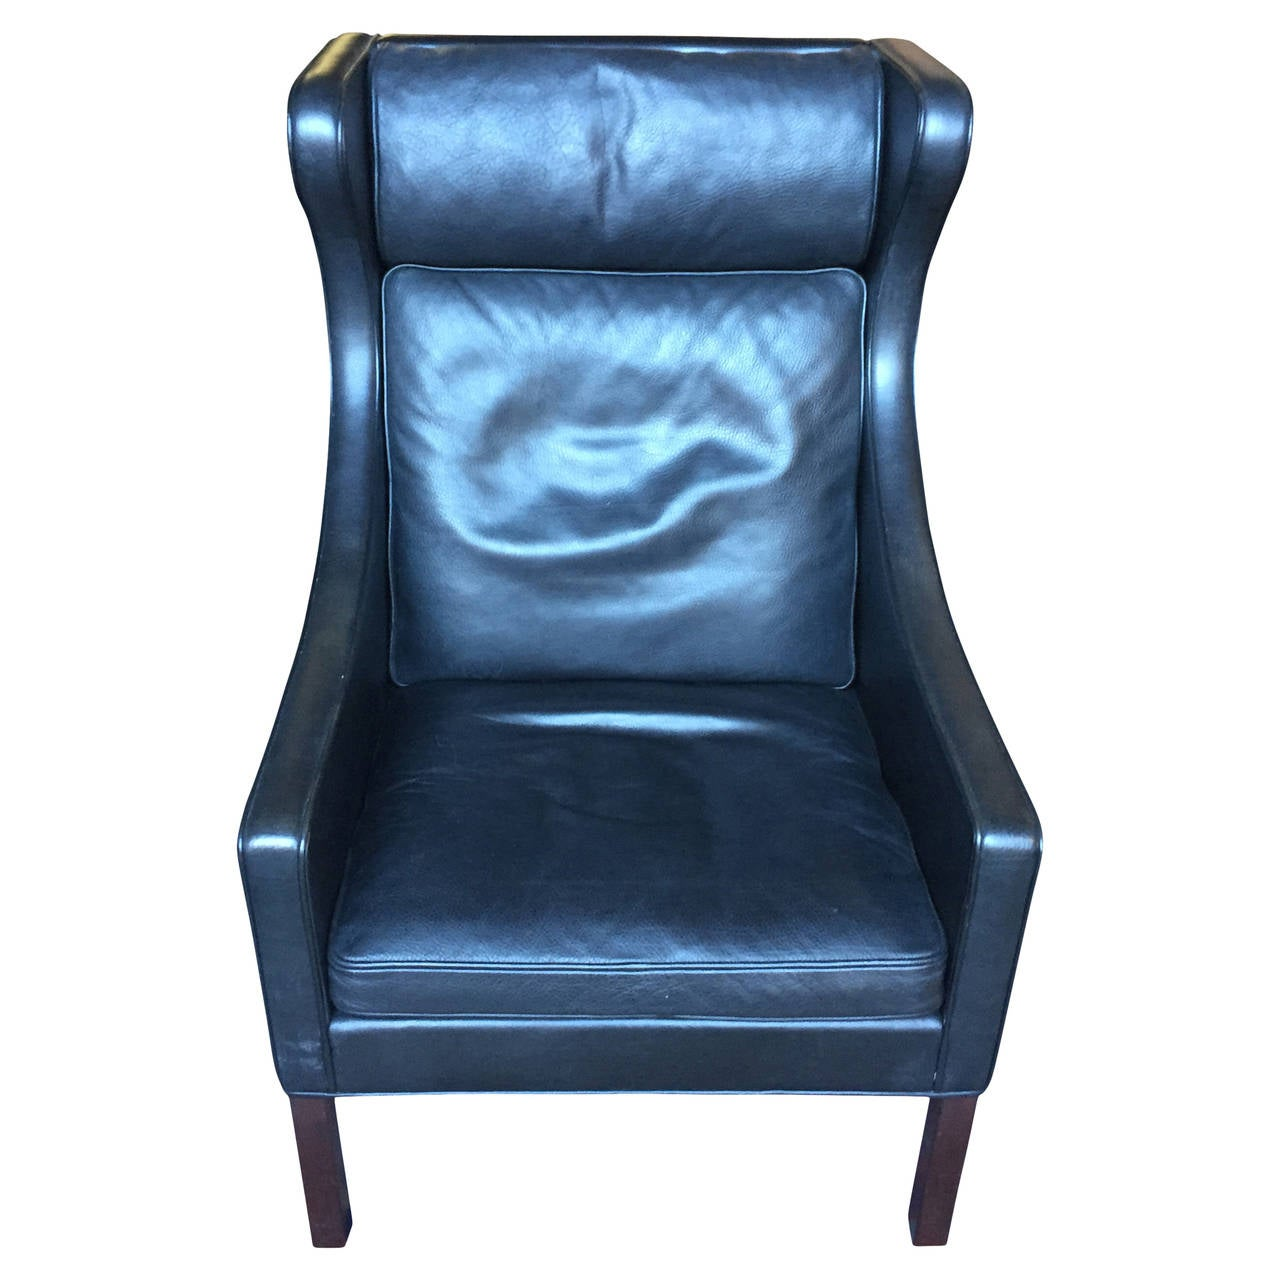 Winged Leather Armchair 28 Images Beautiful Leather Winged Armchair Merciarescue Org